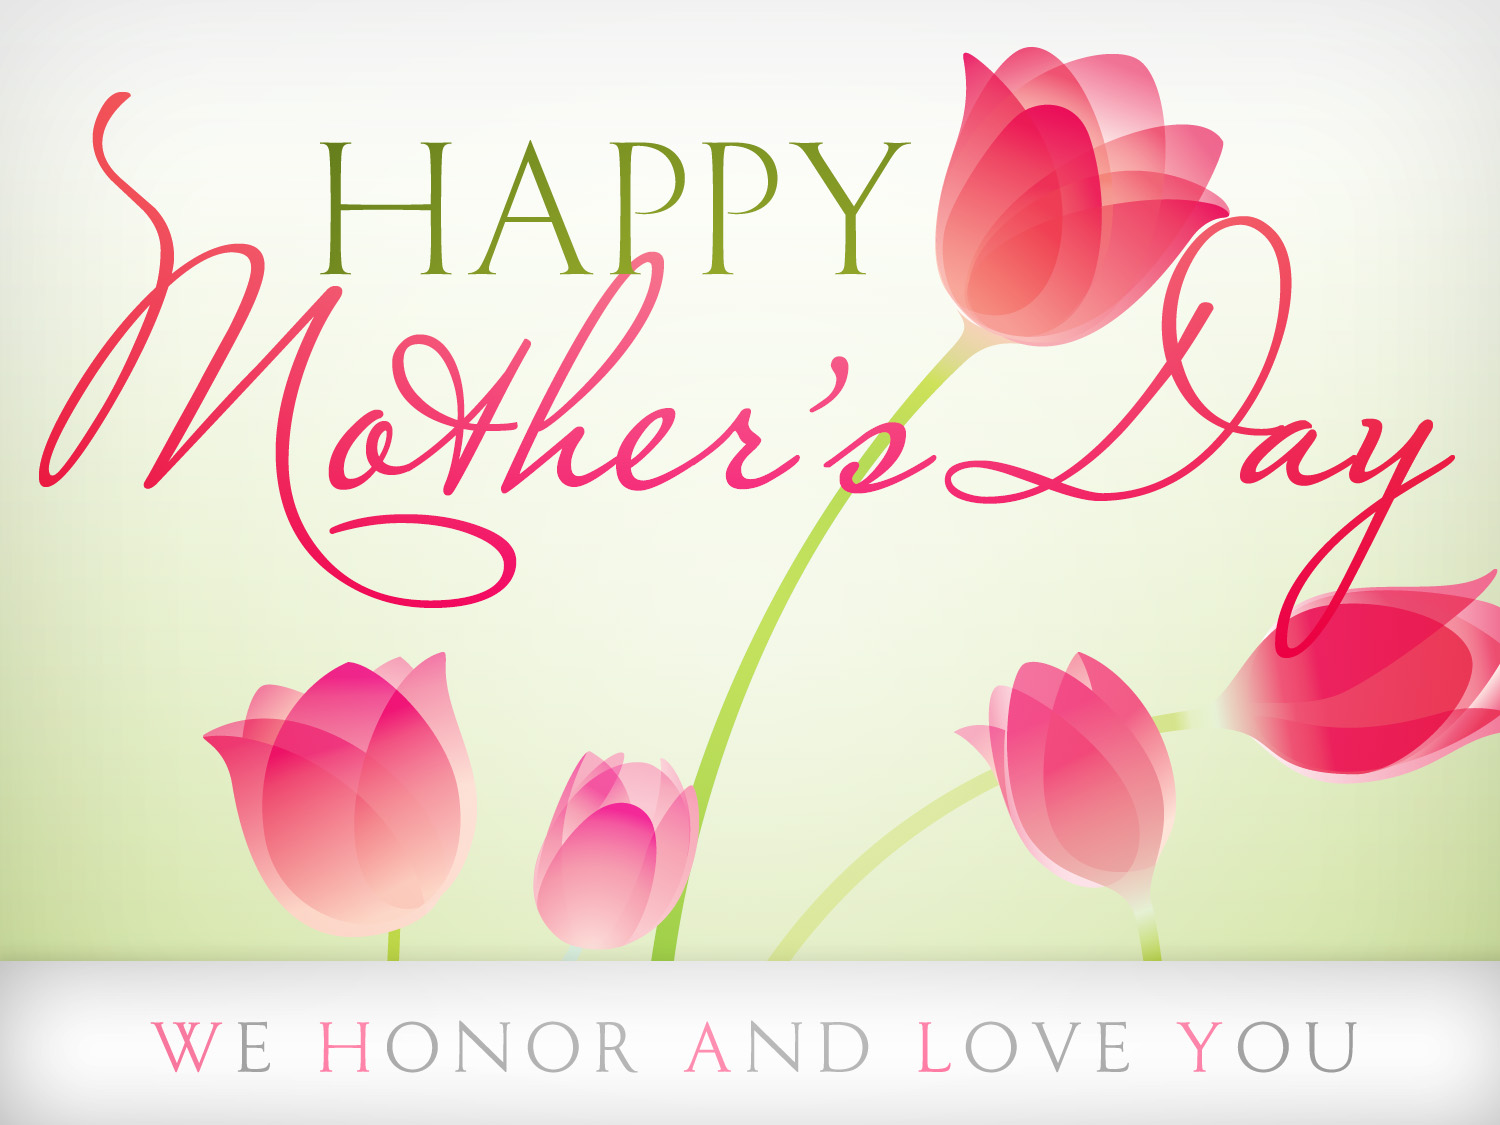 be519cab4a5193a9b6cd3985e83c24de_graphics-free-happy-mothers-day-graphics_1500-1125.jpg